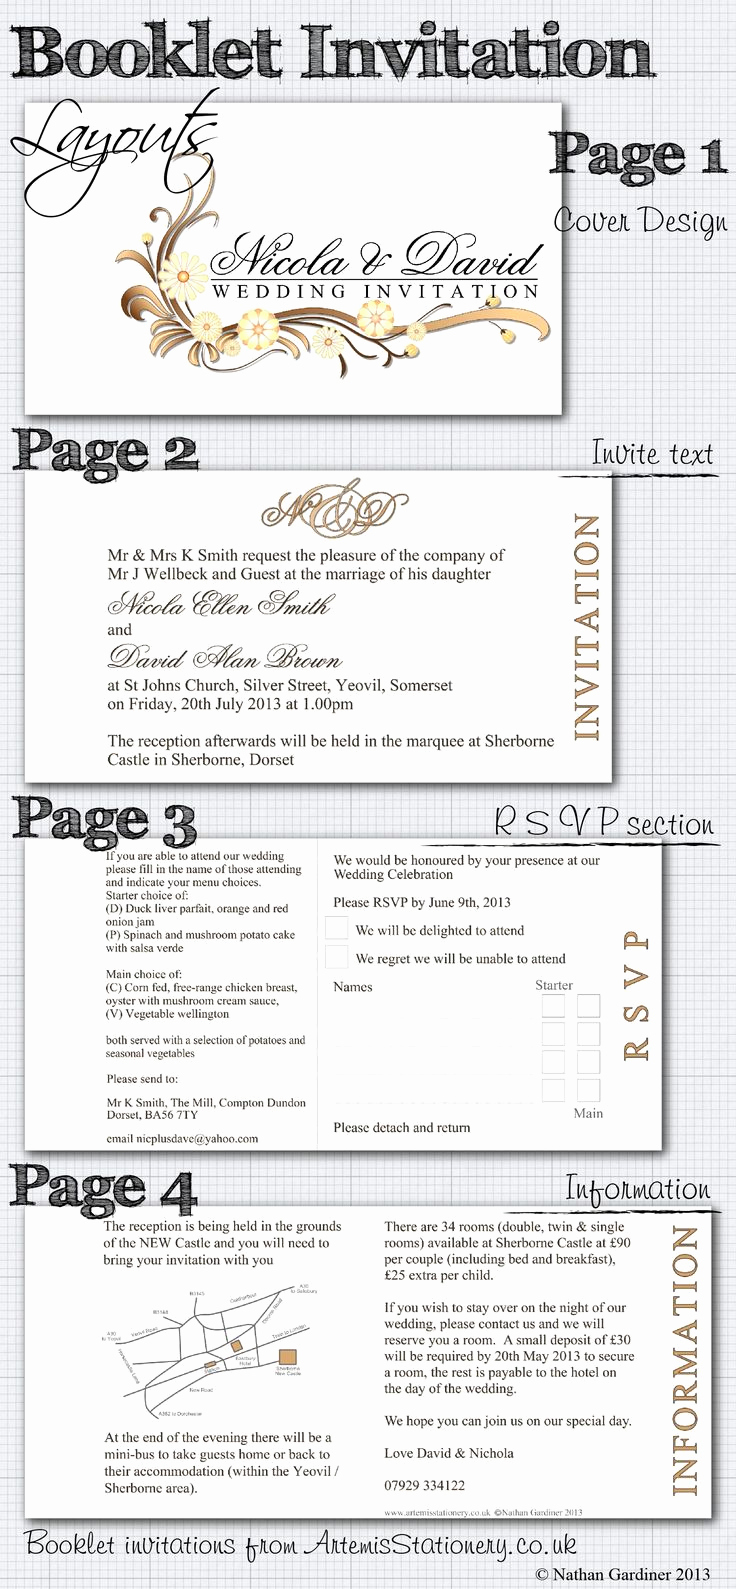 Wedding Invitation Booklet Style Elegant Best 25 Wedding Weekend Ideas On Pinterest